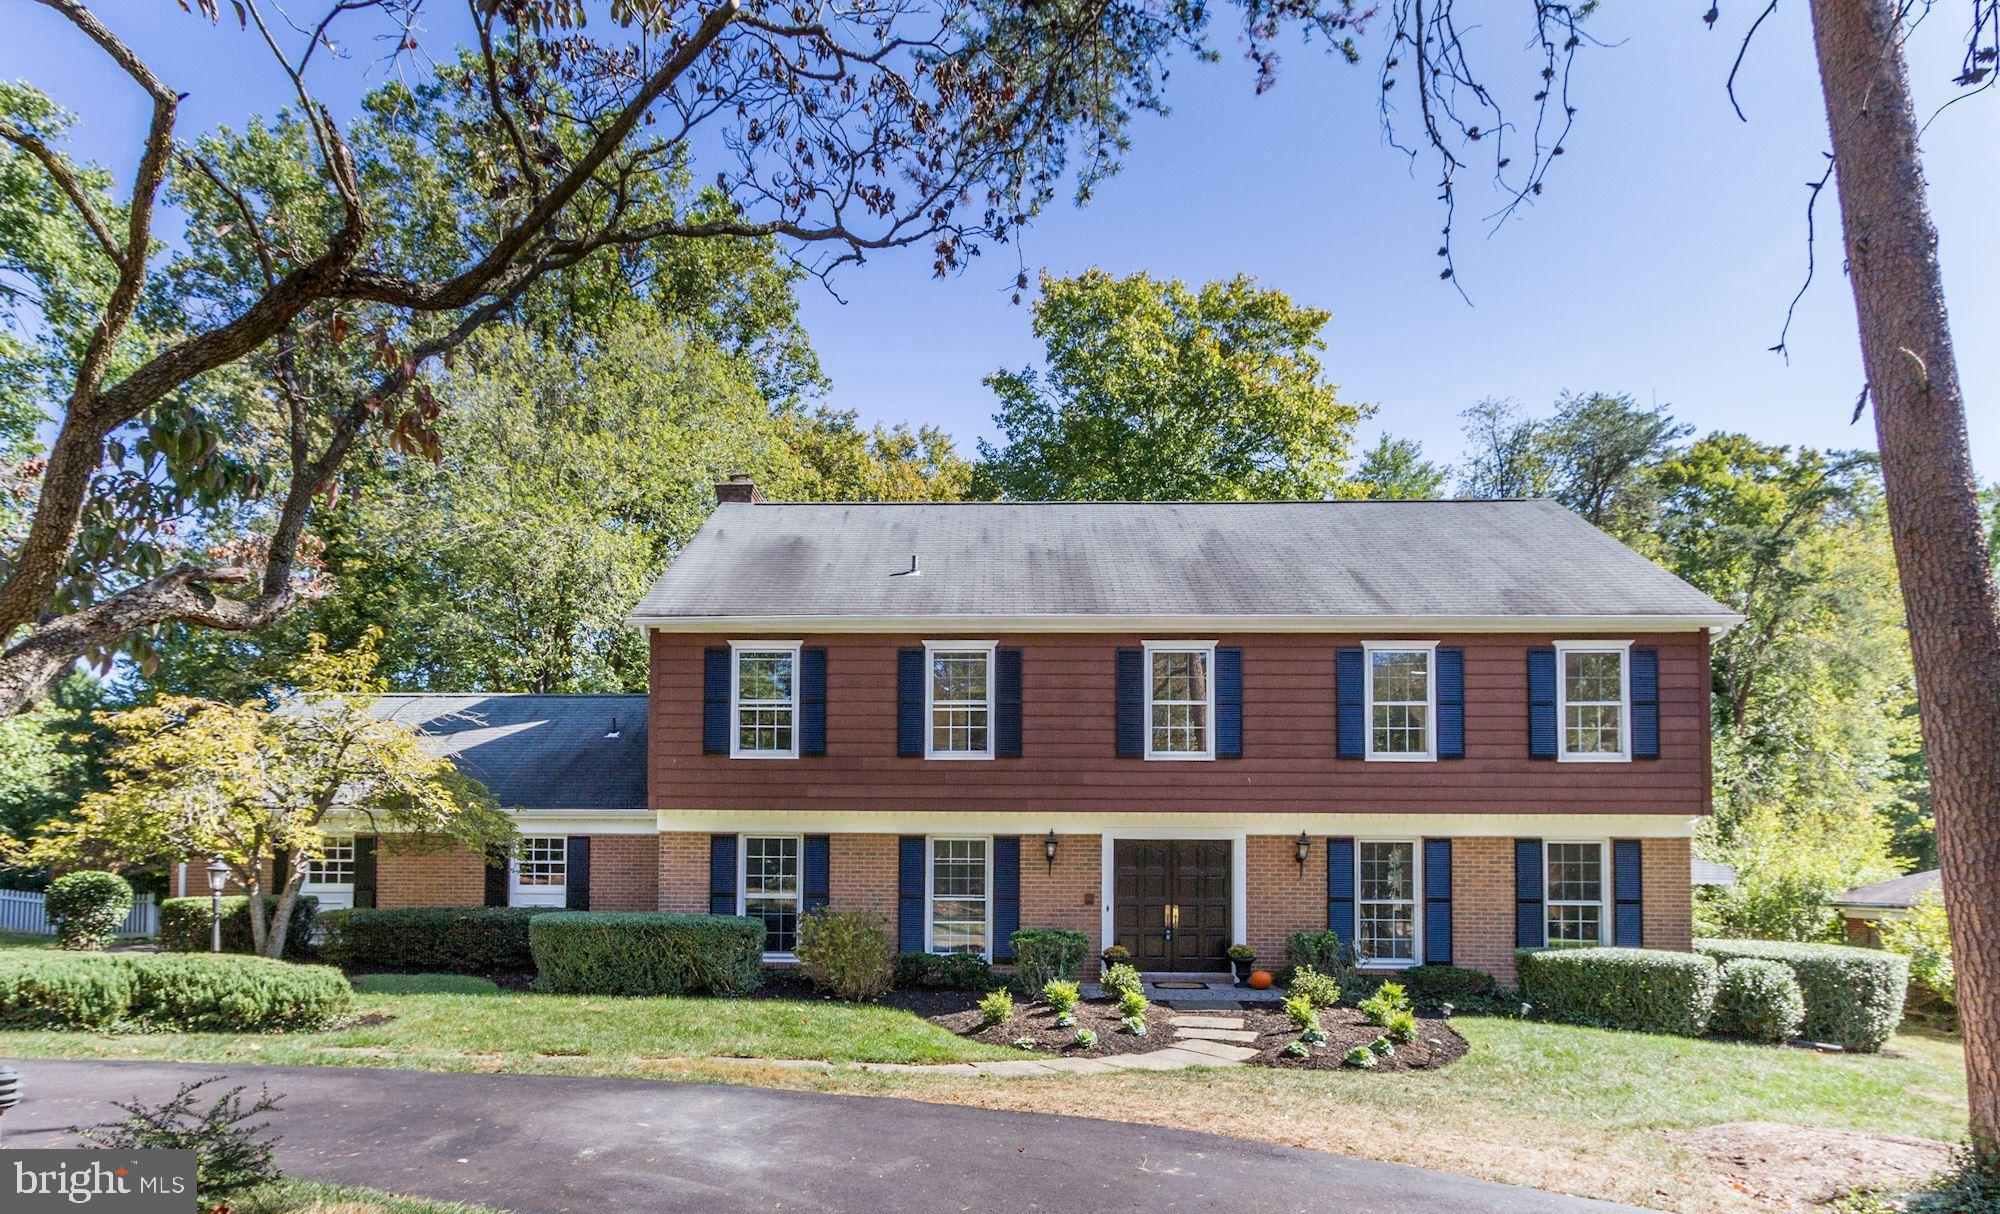 Classic  Colonial with great space and flow! Freshly painted trim & shutters, a front entrance that'